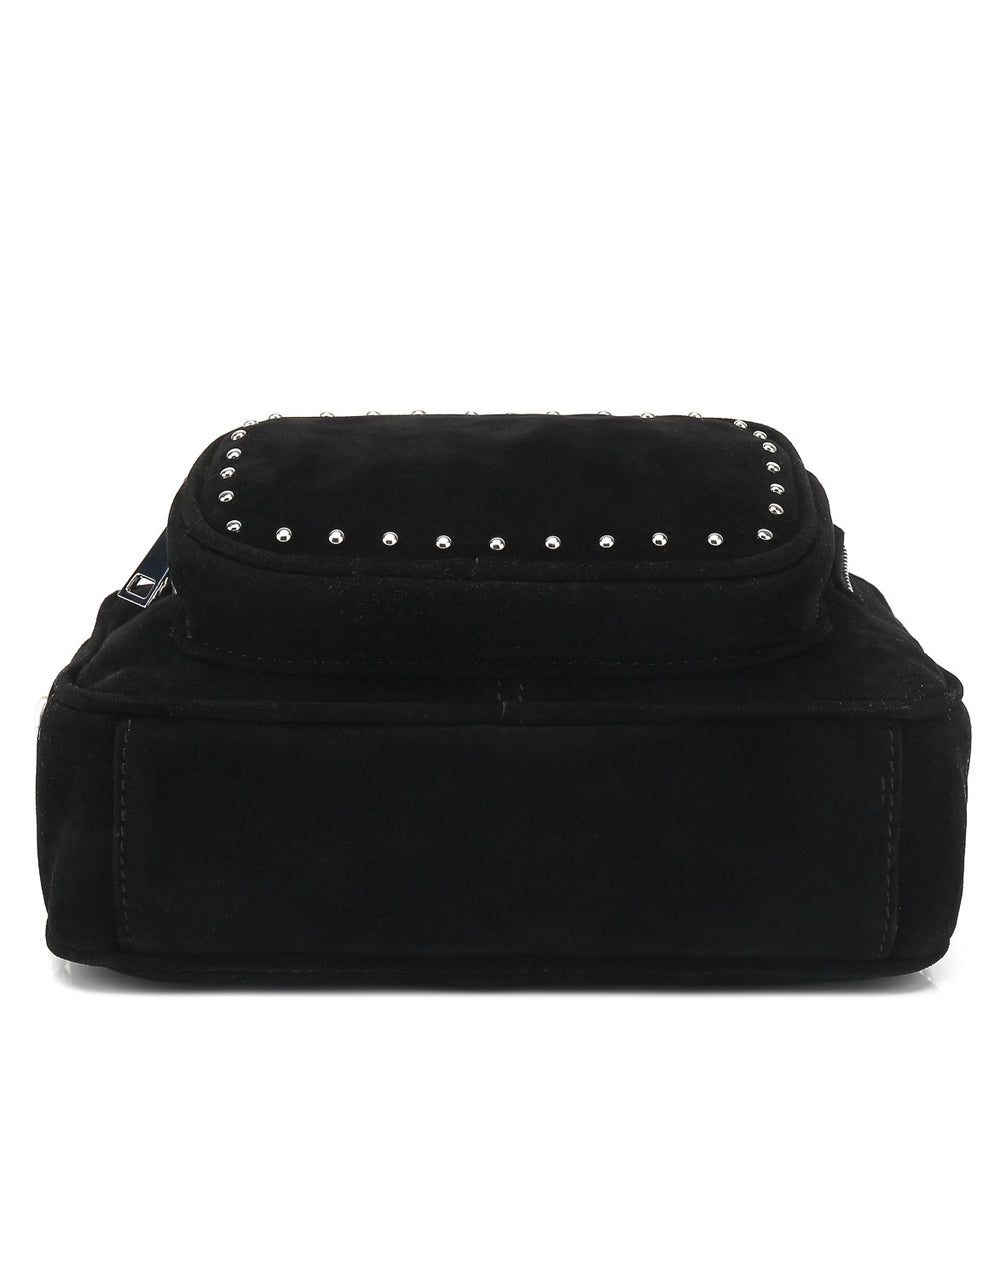 Noella Nelly bag black